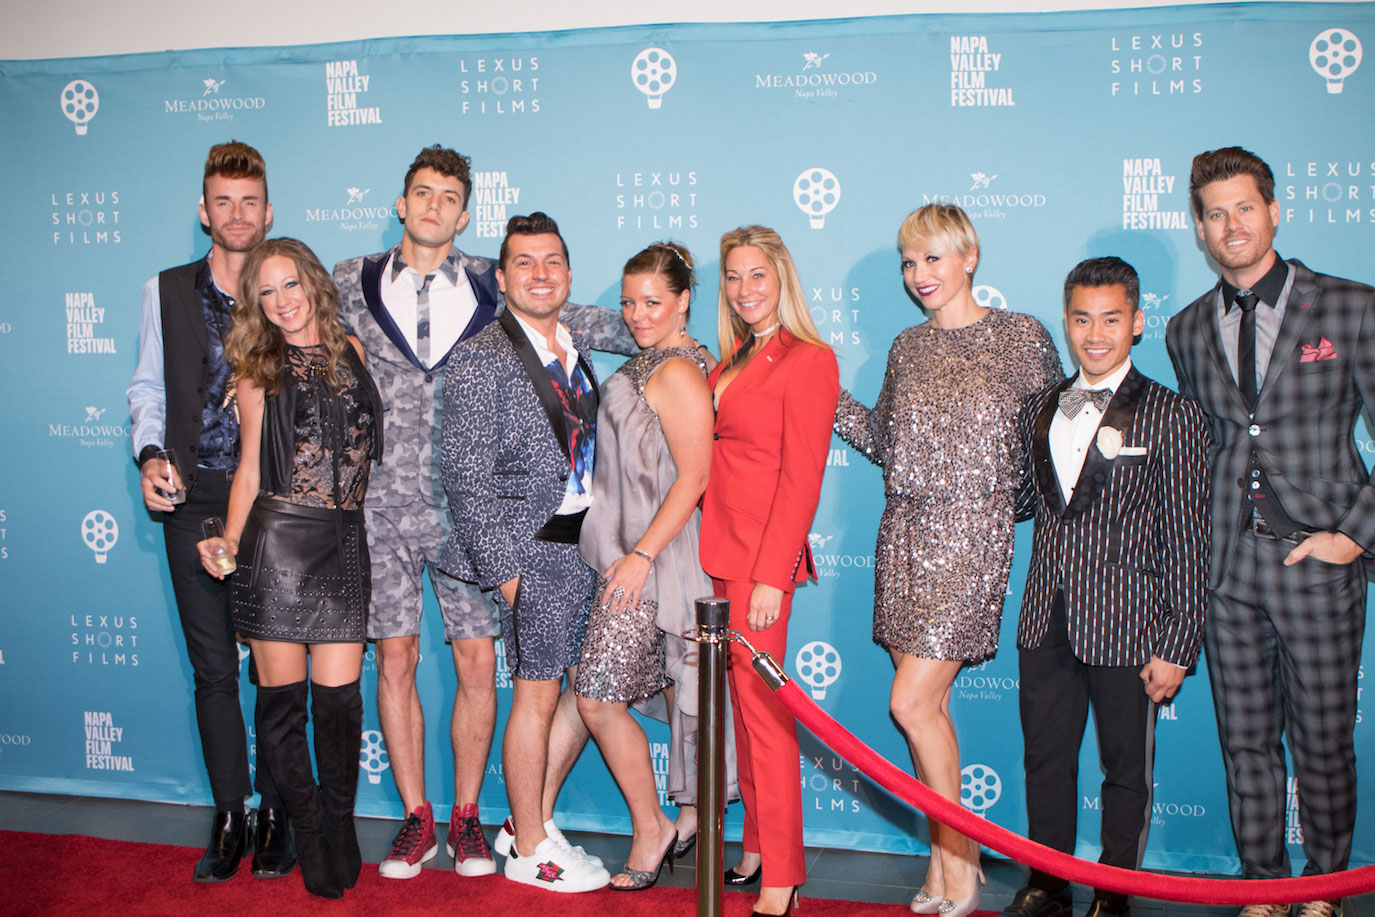 The Jake posse includes Penelope Moore, second from left, model Robert Mull, and Jake Wall; Tiffany Cummins in red pantsuit, and Nathan Johnson far right